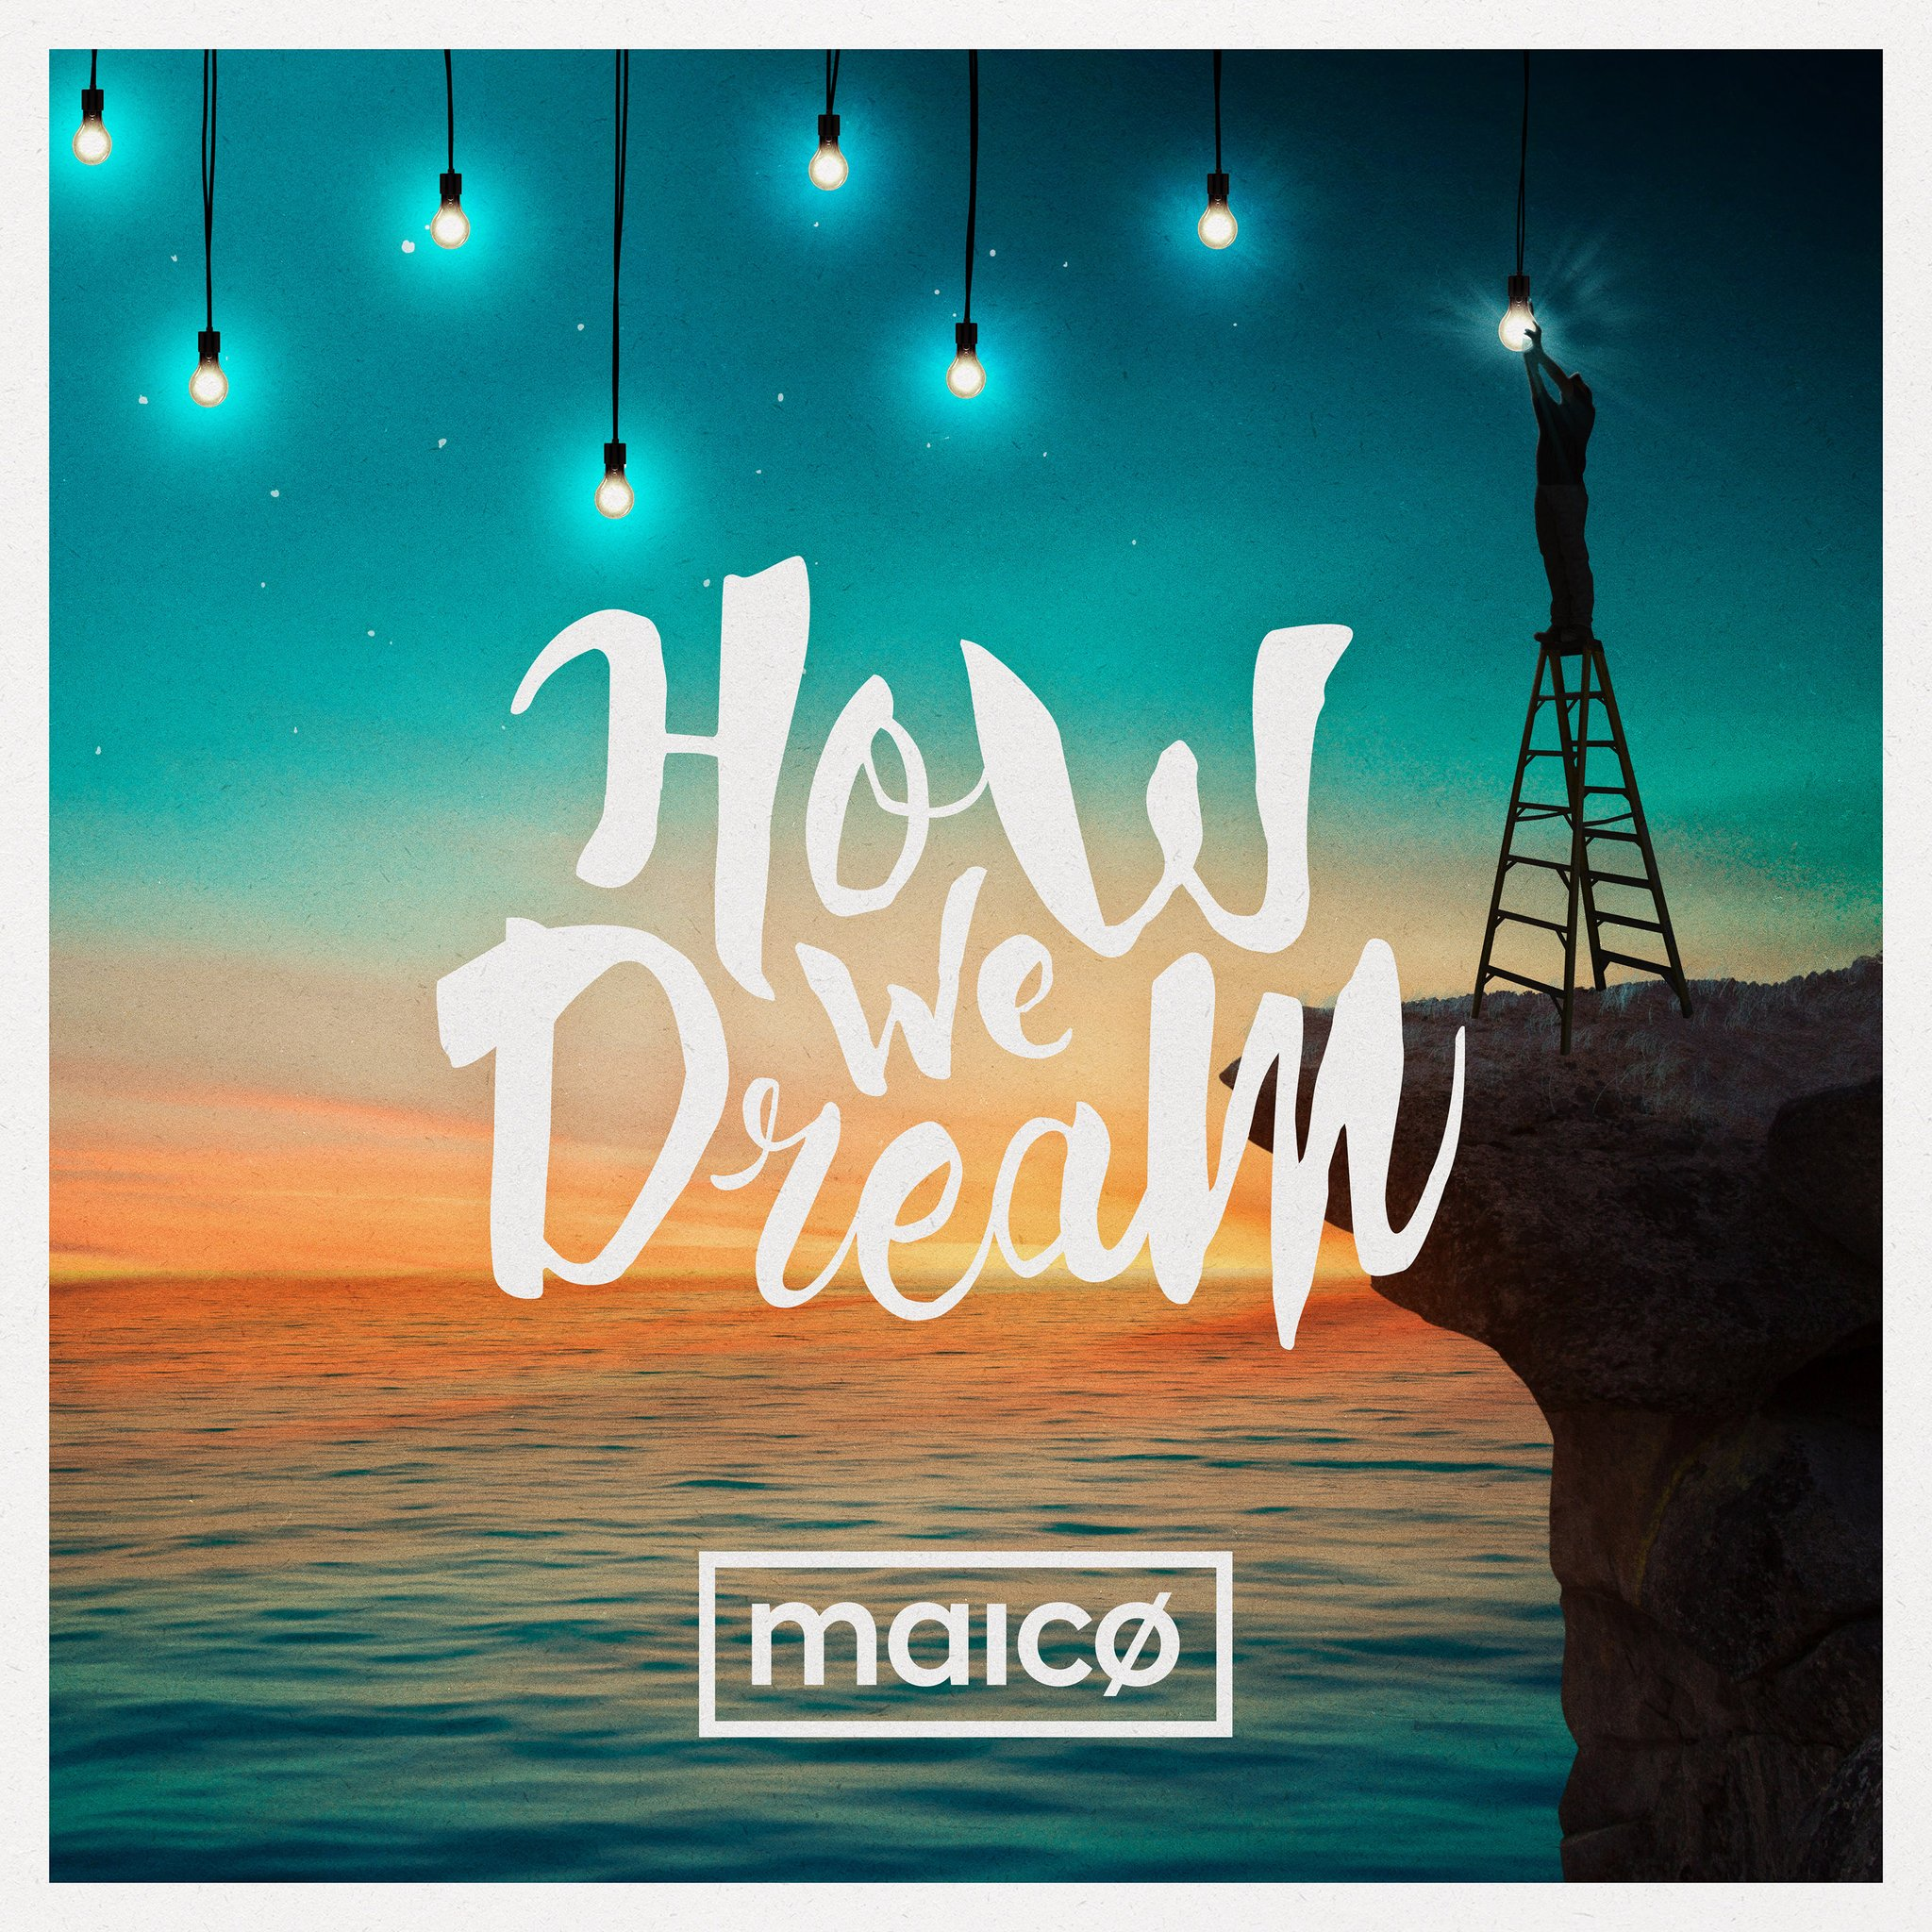 Musiteca Maico - How We Dream